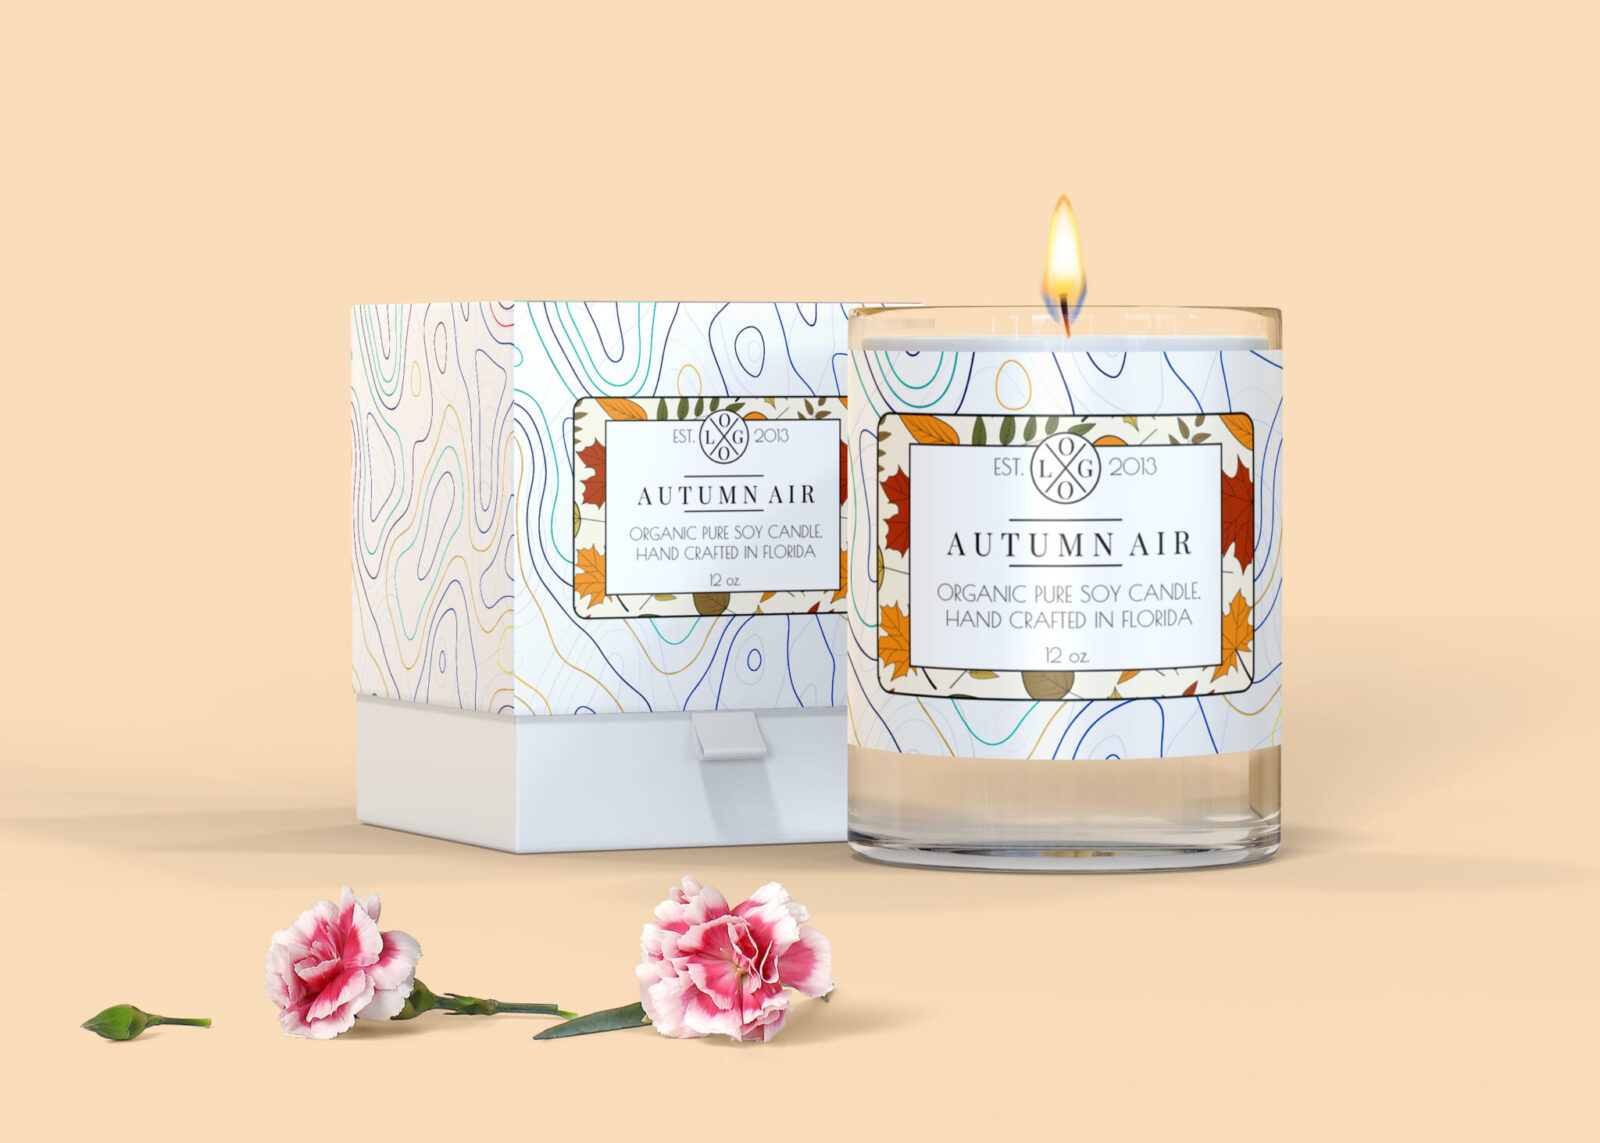 Autumn Air Candle Label Mockup